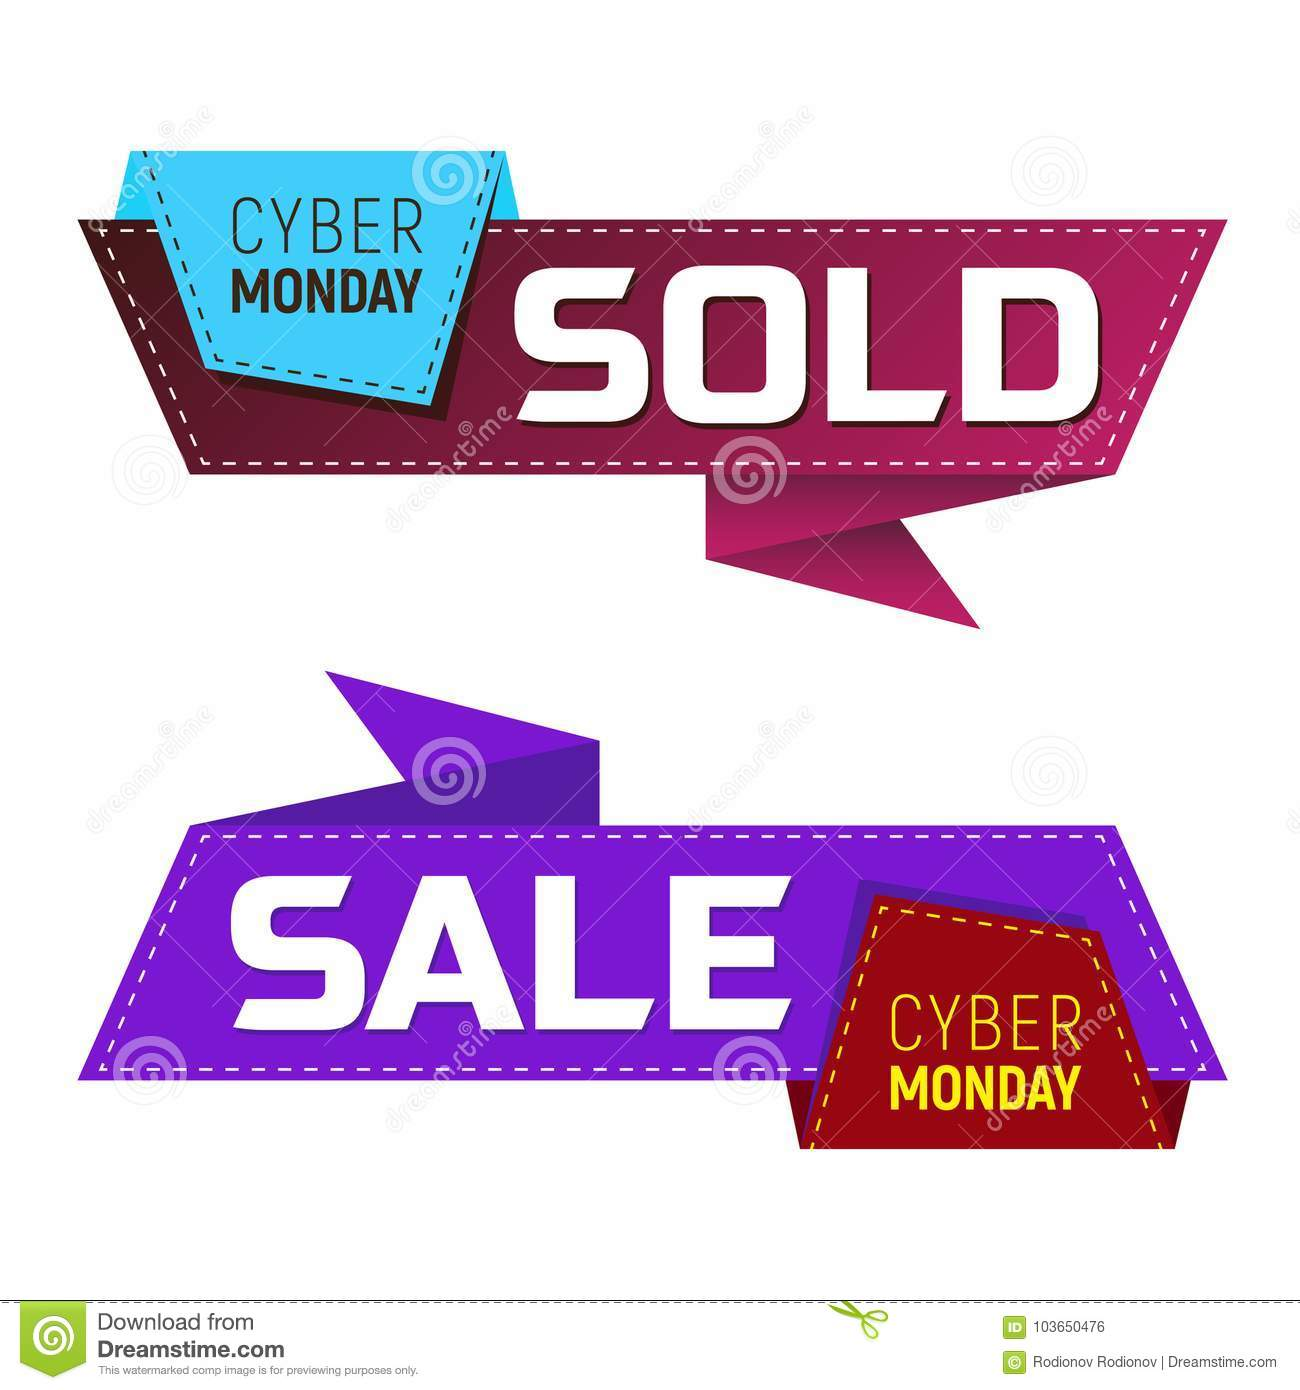 Fashion style Friday Shoppingblack cyber monday promotions for woman